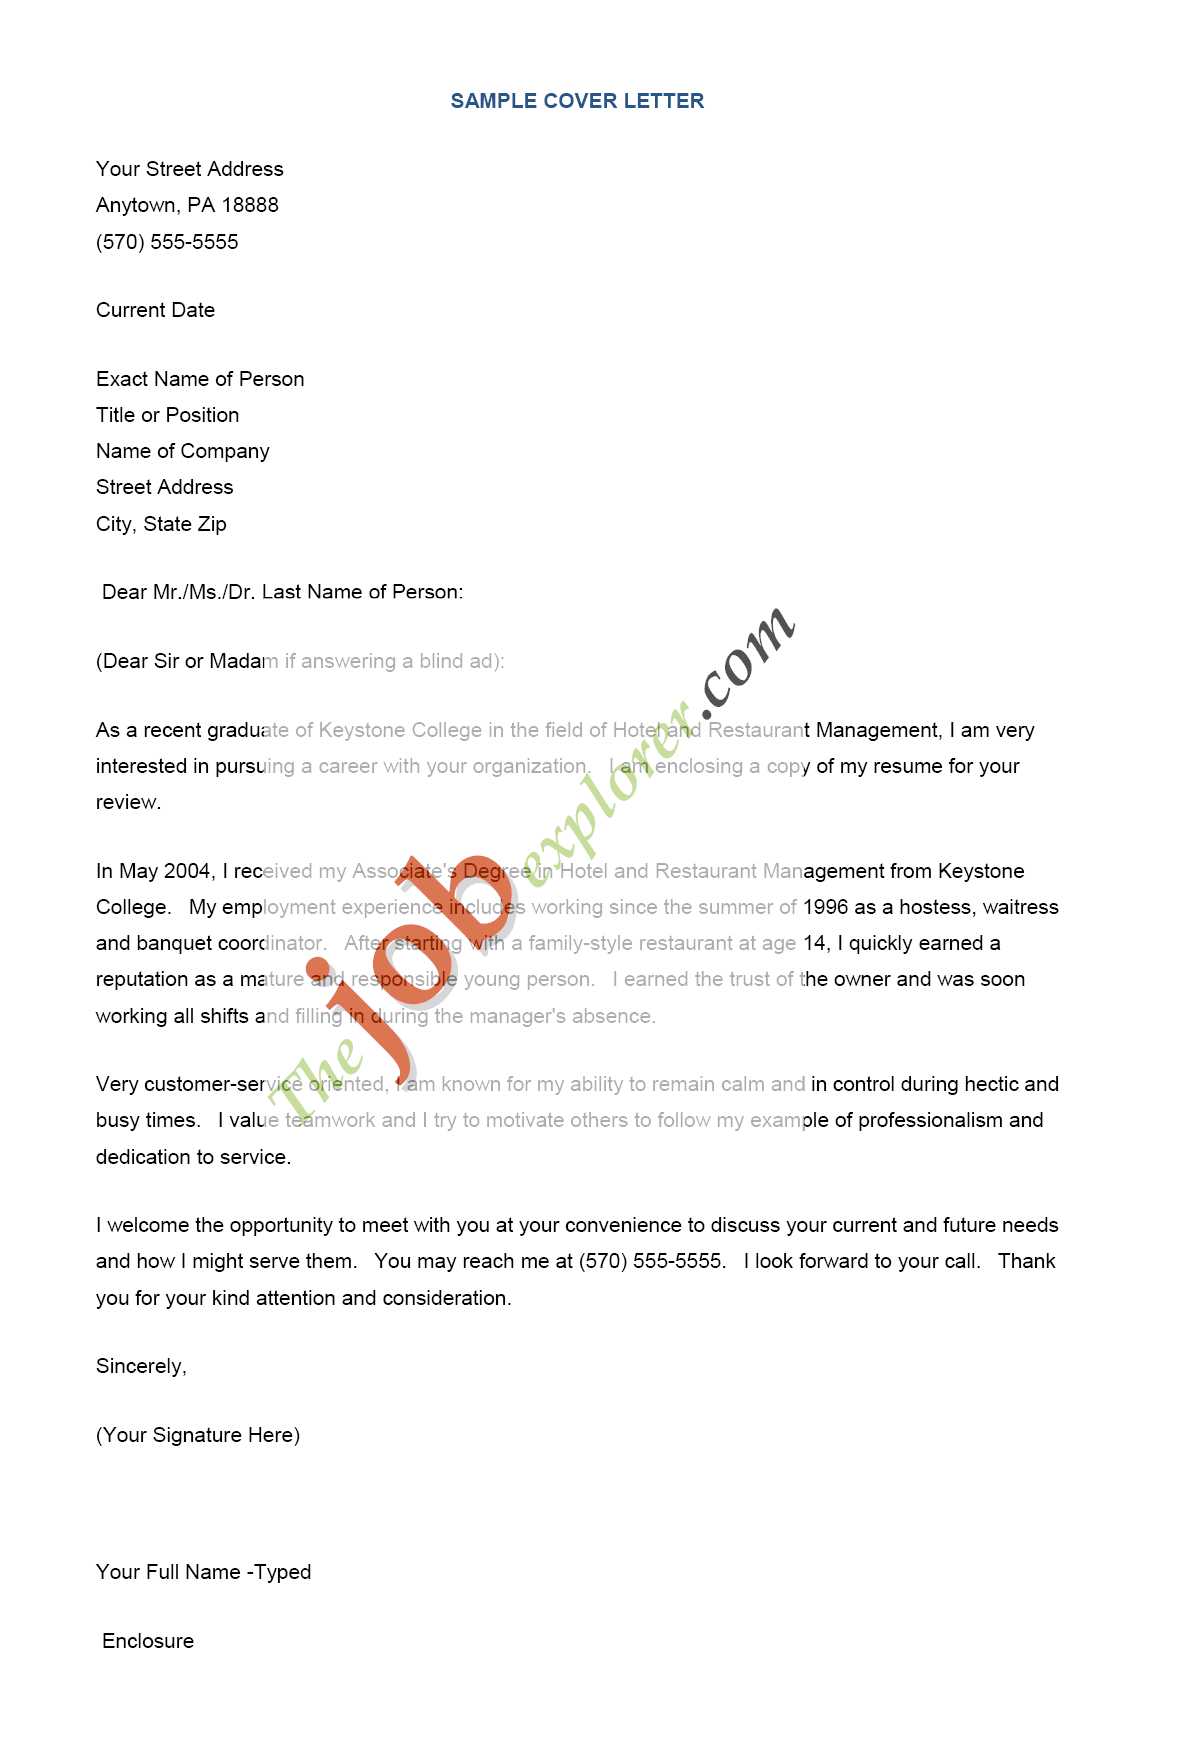 Examples Cover Letters For Resumes Job Resume Cover Letter Example Sample Letters For Jobs